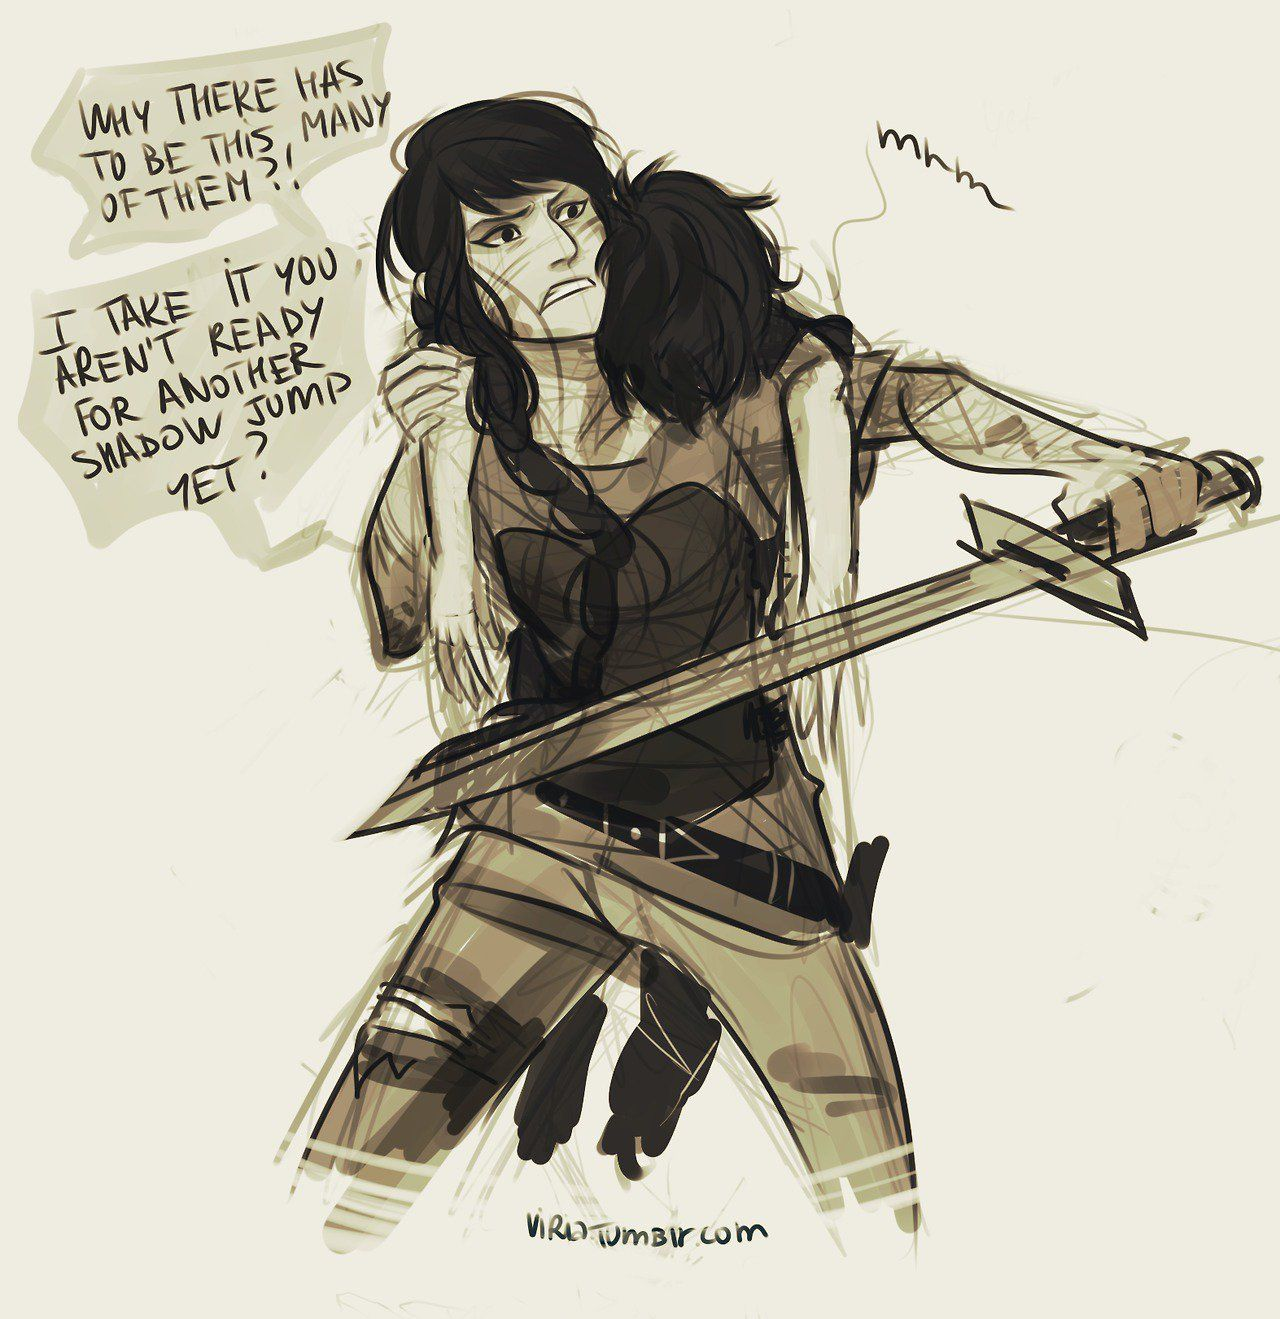 caleo fanfiction viria - Google Search | Percy Jackson ...